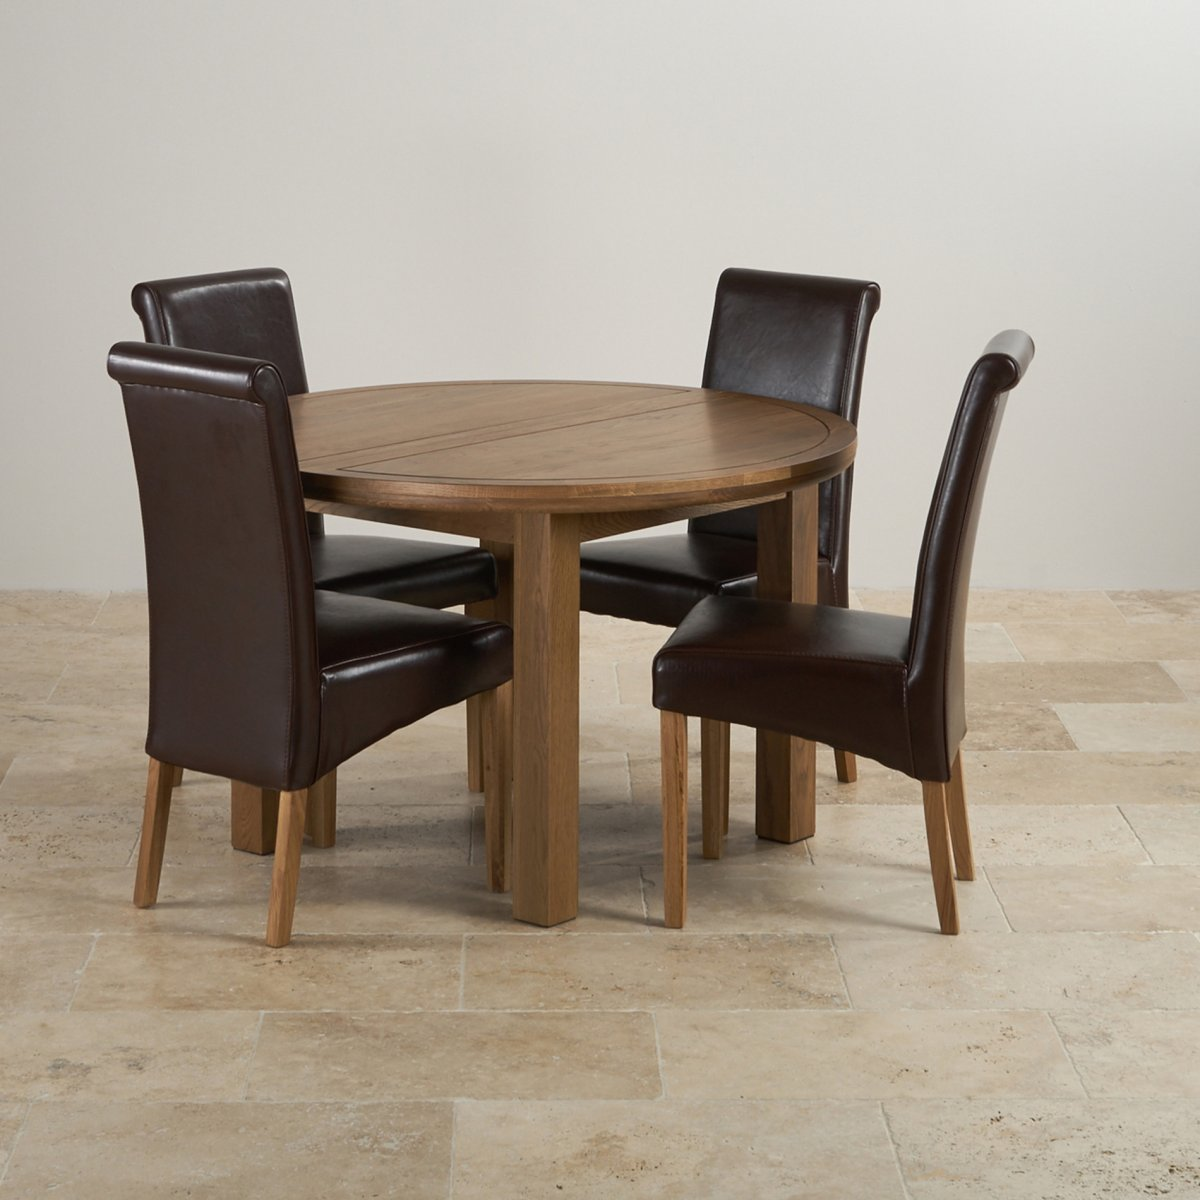 Knightsbridge Round Extending Dining Table Set: Table + 4